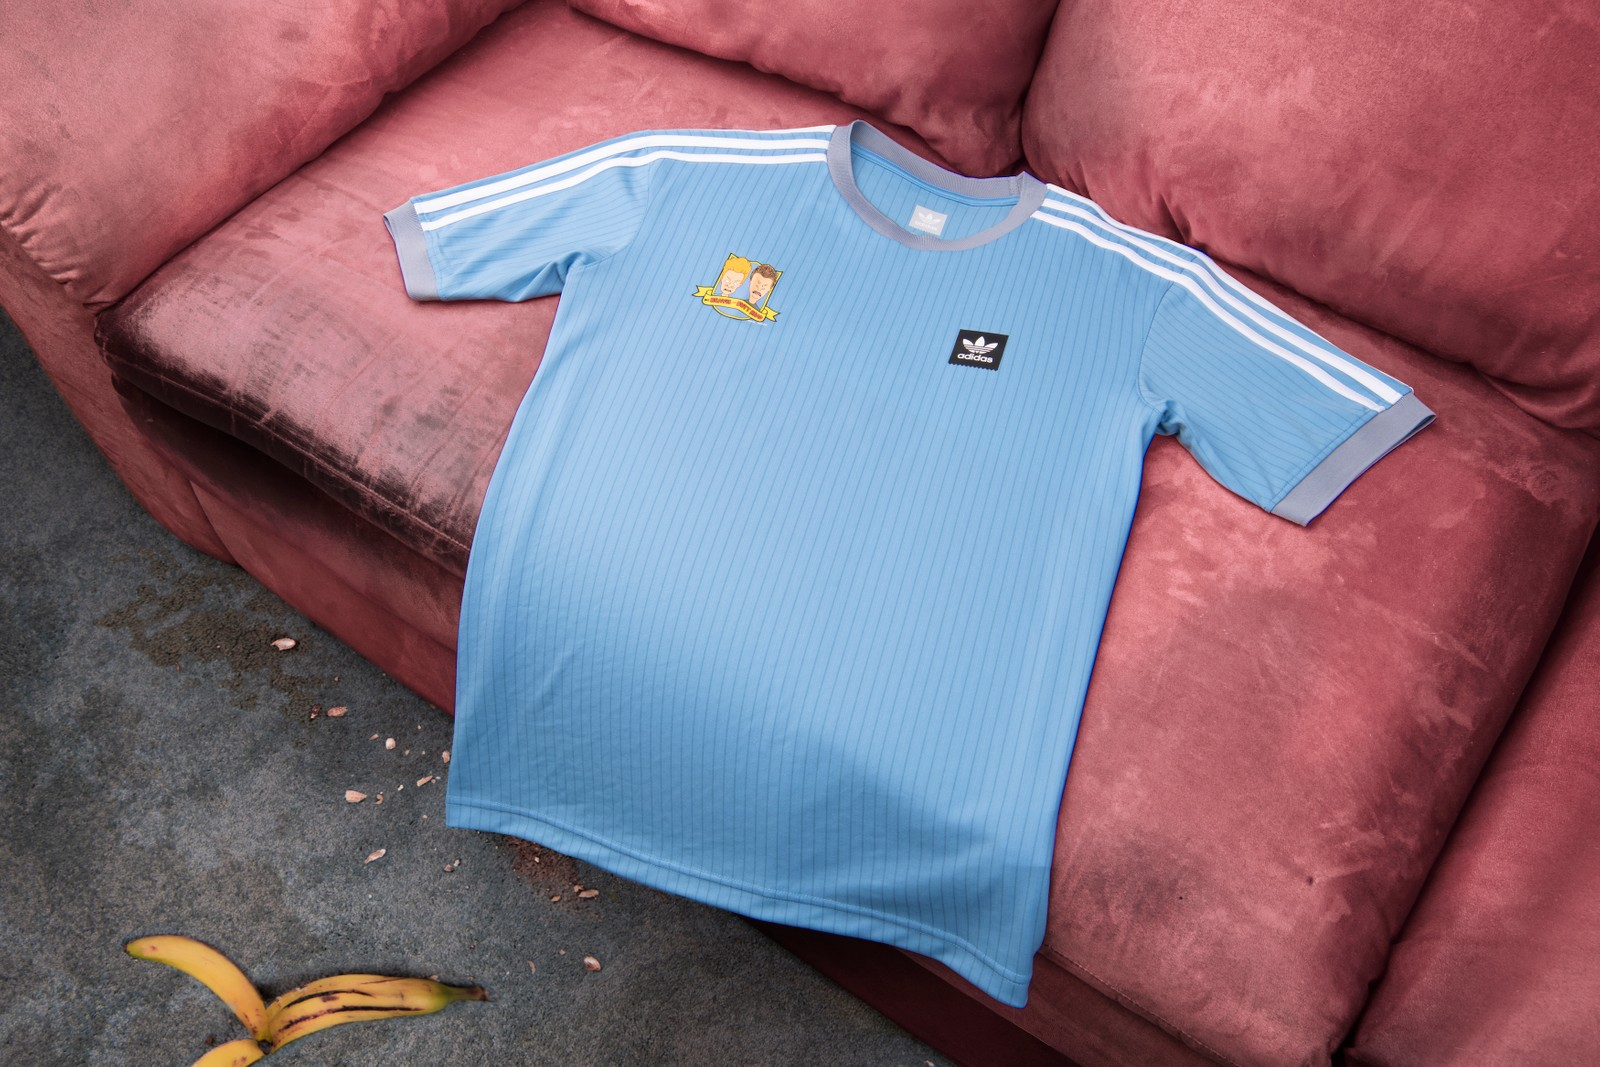 ADIDAS DROPS A SECOND BEAVIS AND BUTT-HEAD SKATE COLLECTION (…COOL)